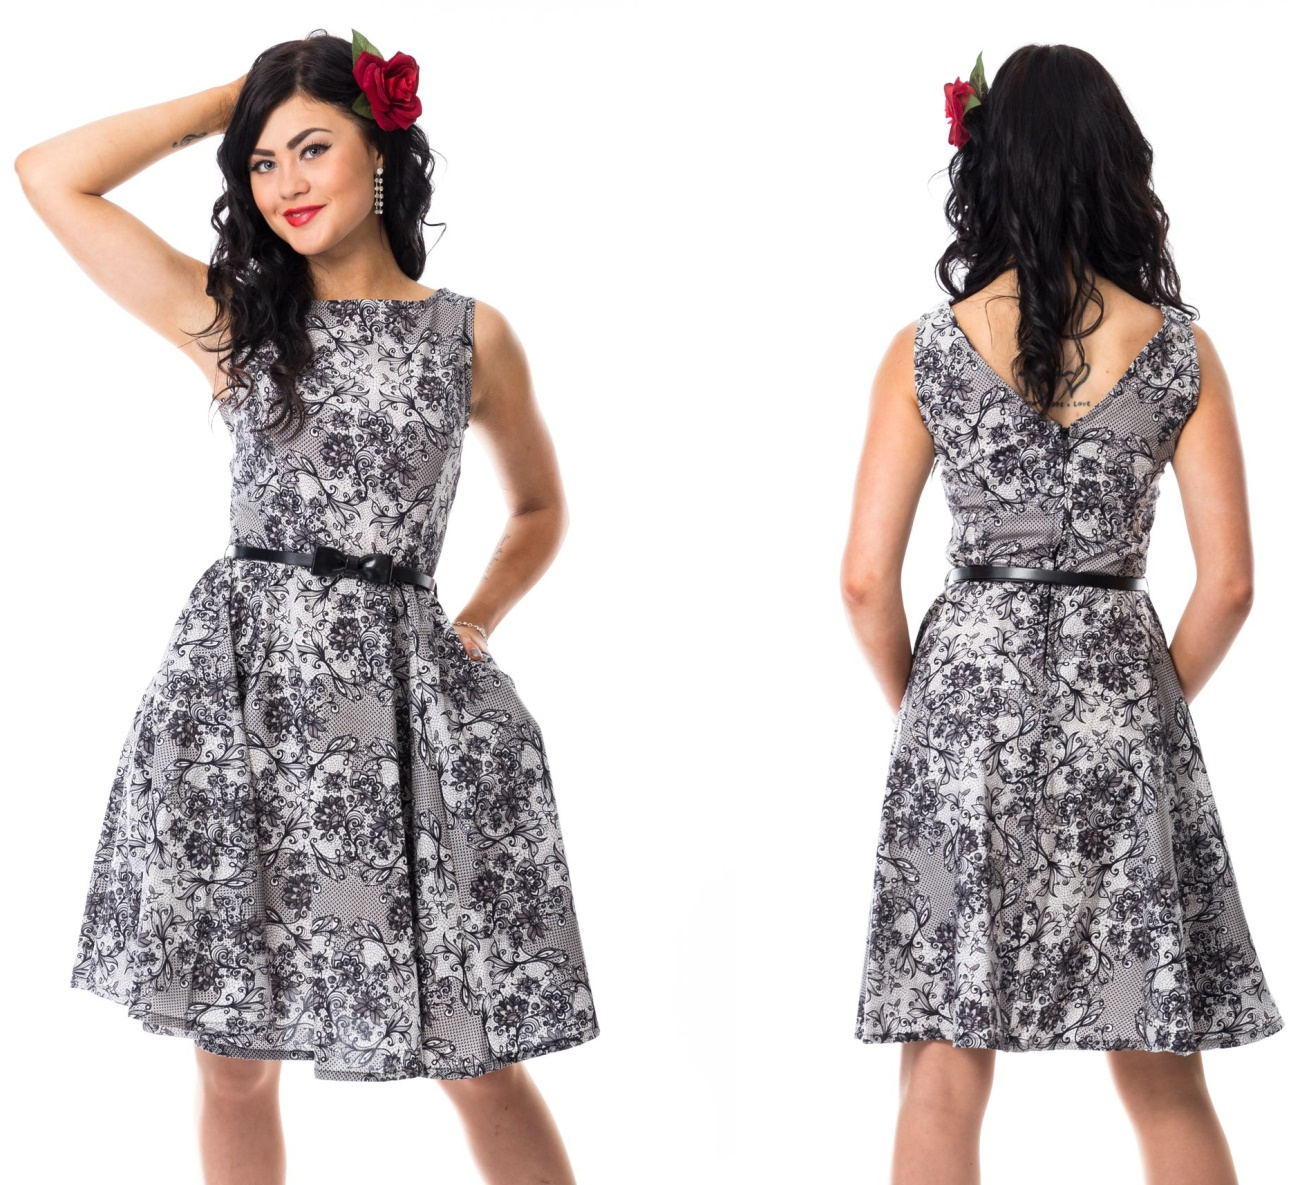 57bb819c918f Swing Dress Rockabella - Rockabella bei Gothic Onlineshop - www.the-clash.de